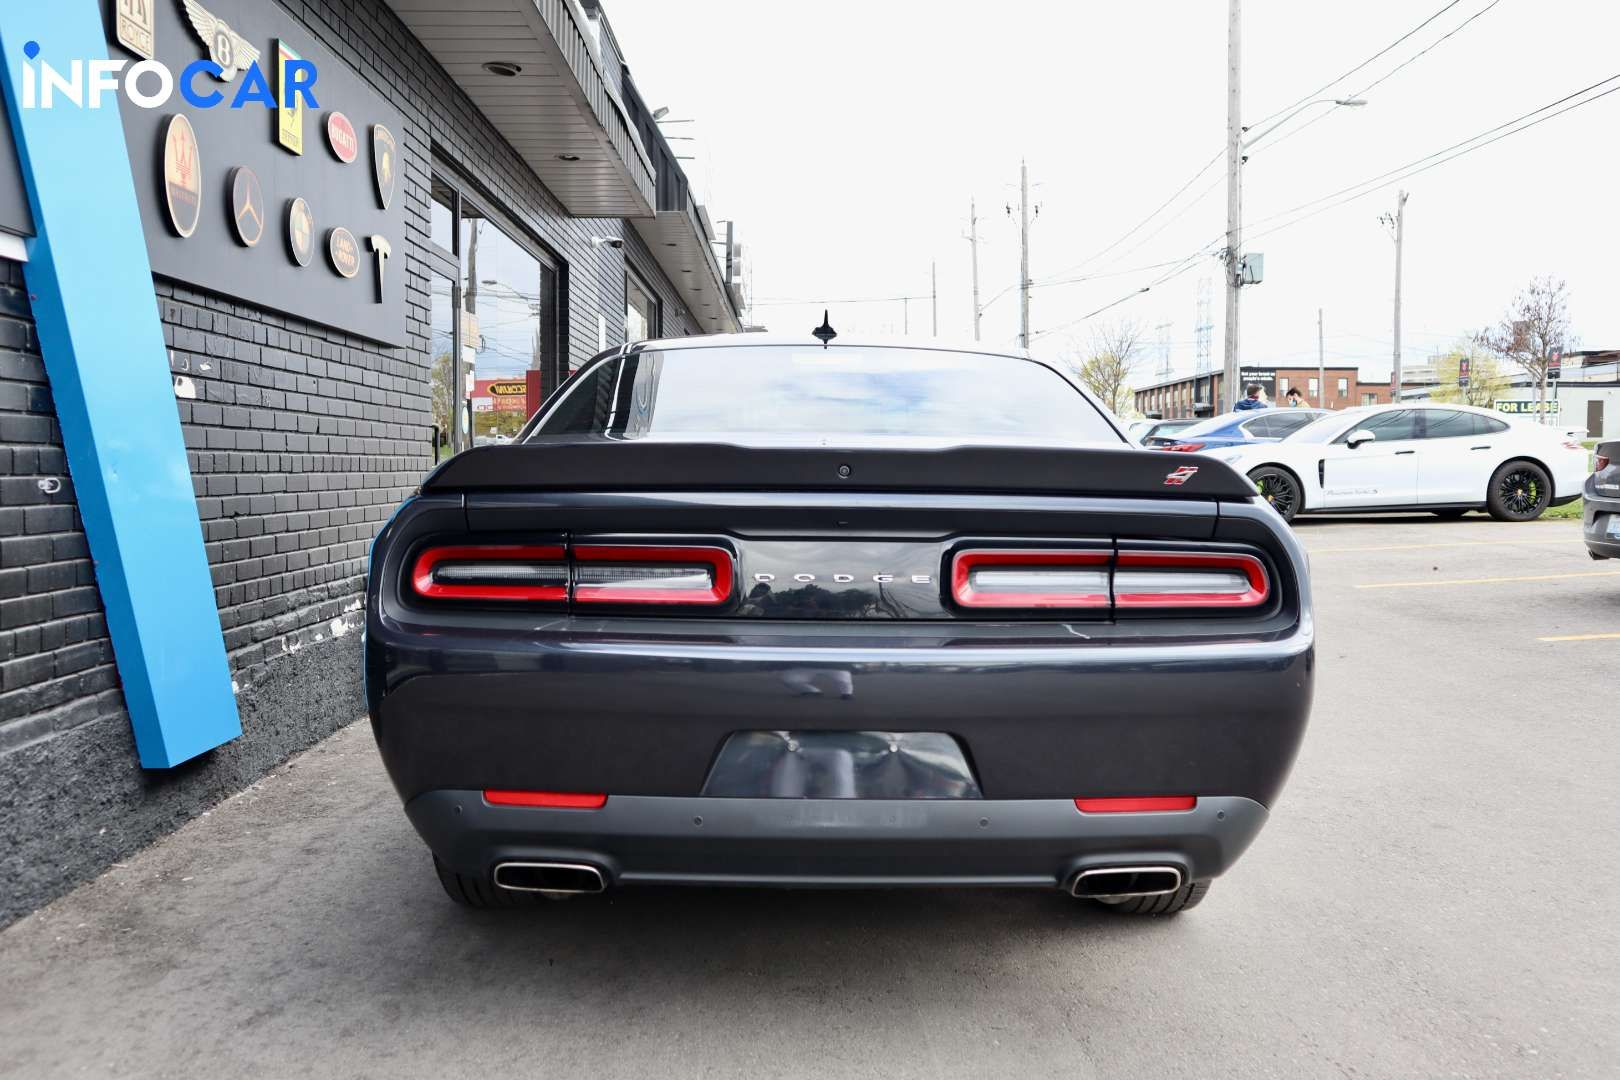 2019 Dodge Challenger GT AWD - INFOCAR - Toronto's Most Comprehensive New and Used Auto Trading Platform